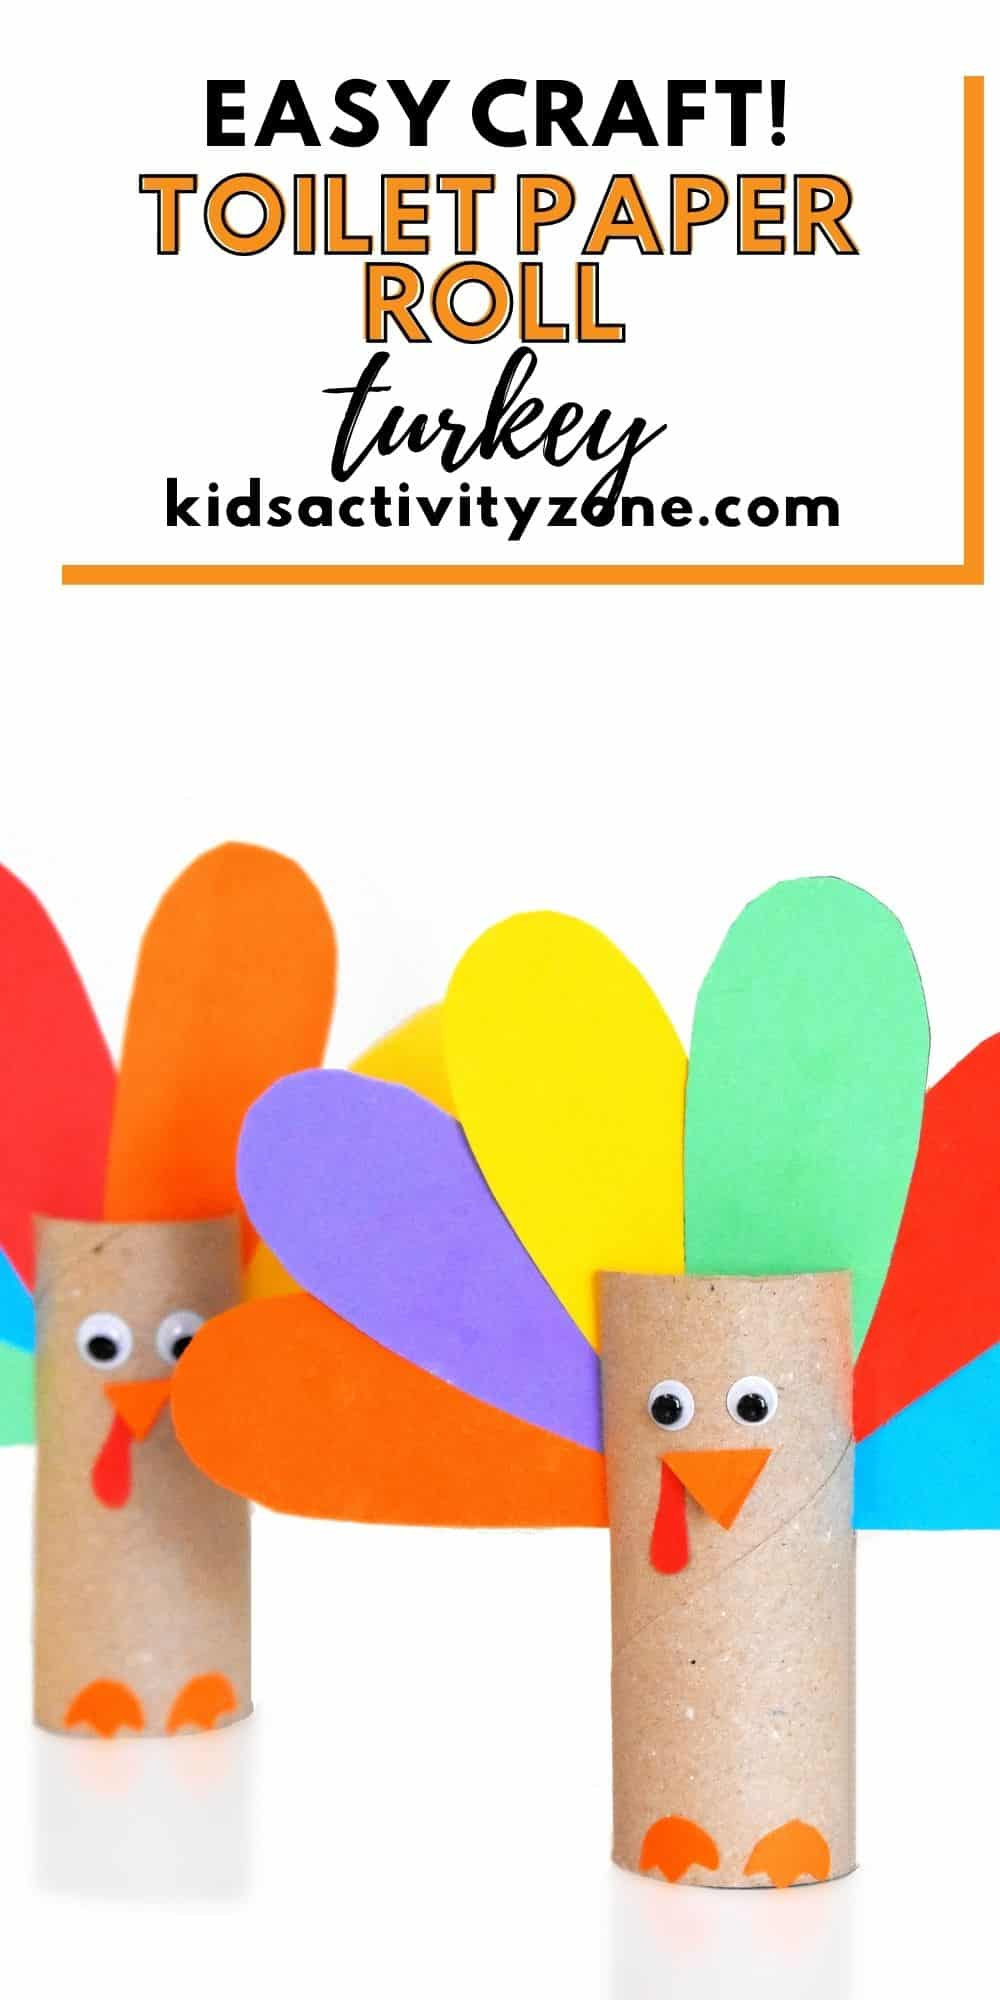 Toilet Paper Roll Thanksgiving Craft Pinterest Collage is an easy and fun Thanksgiving activity that young kids to can assist in. Nothing is more fun that using things around the house to make these cute little turkey crafts for Thanksgiving!